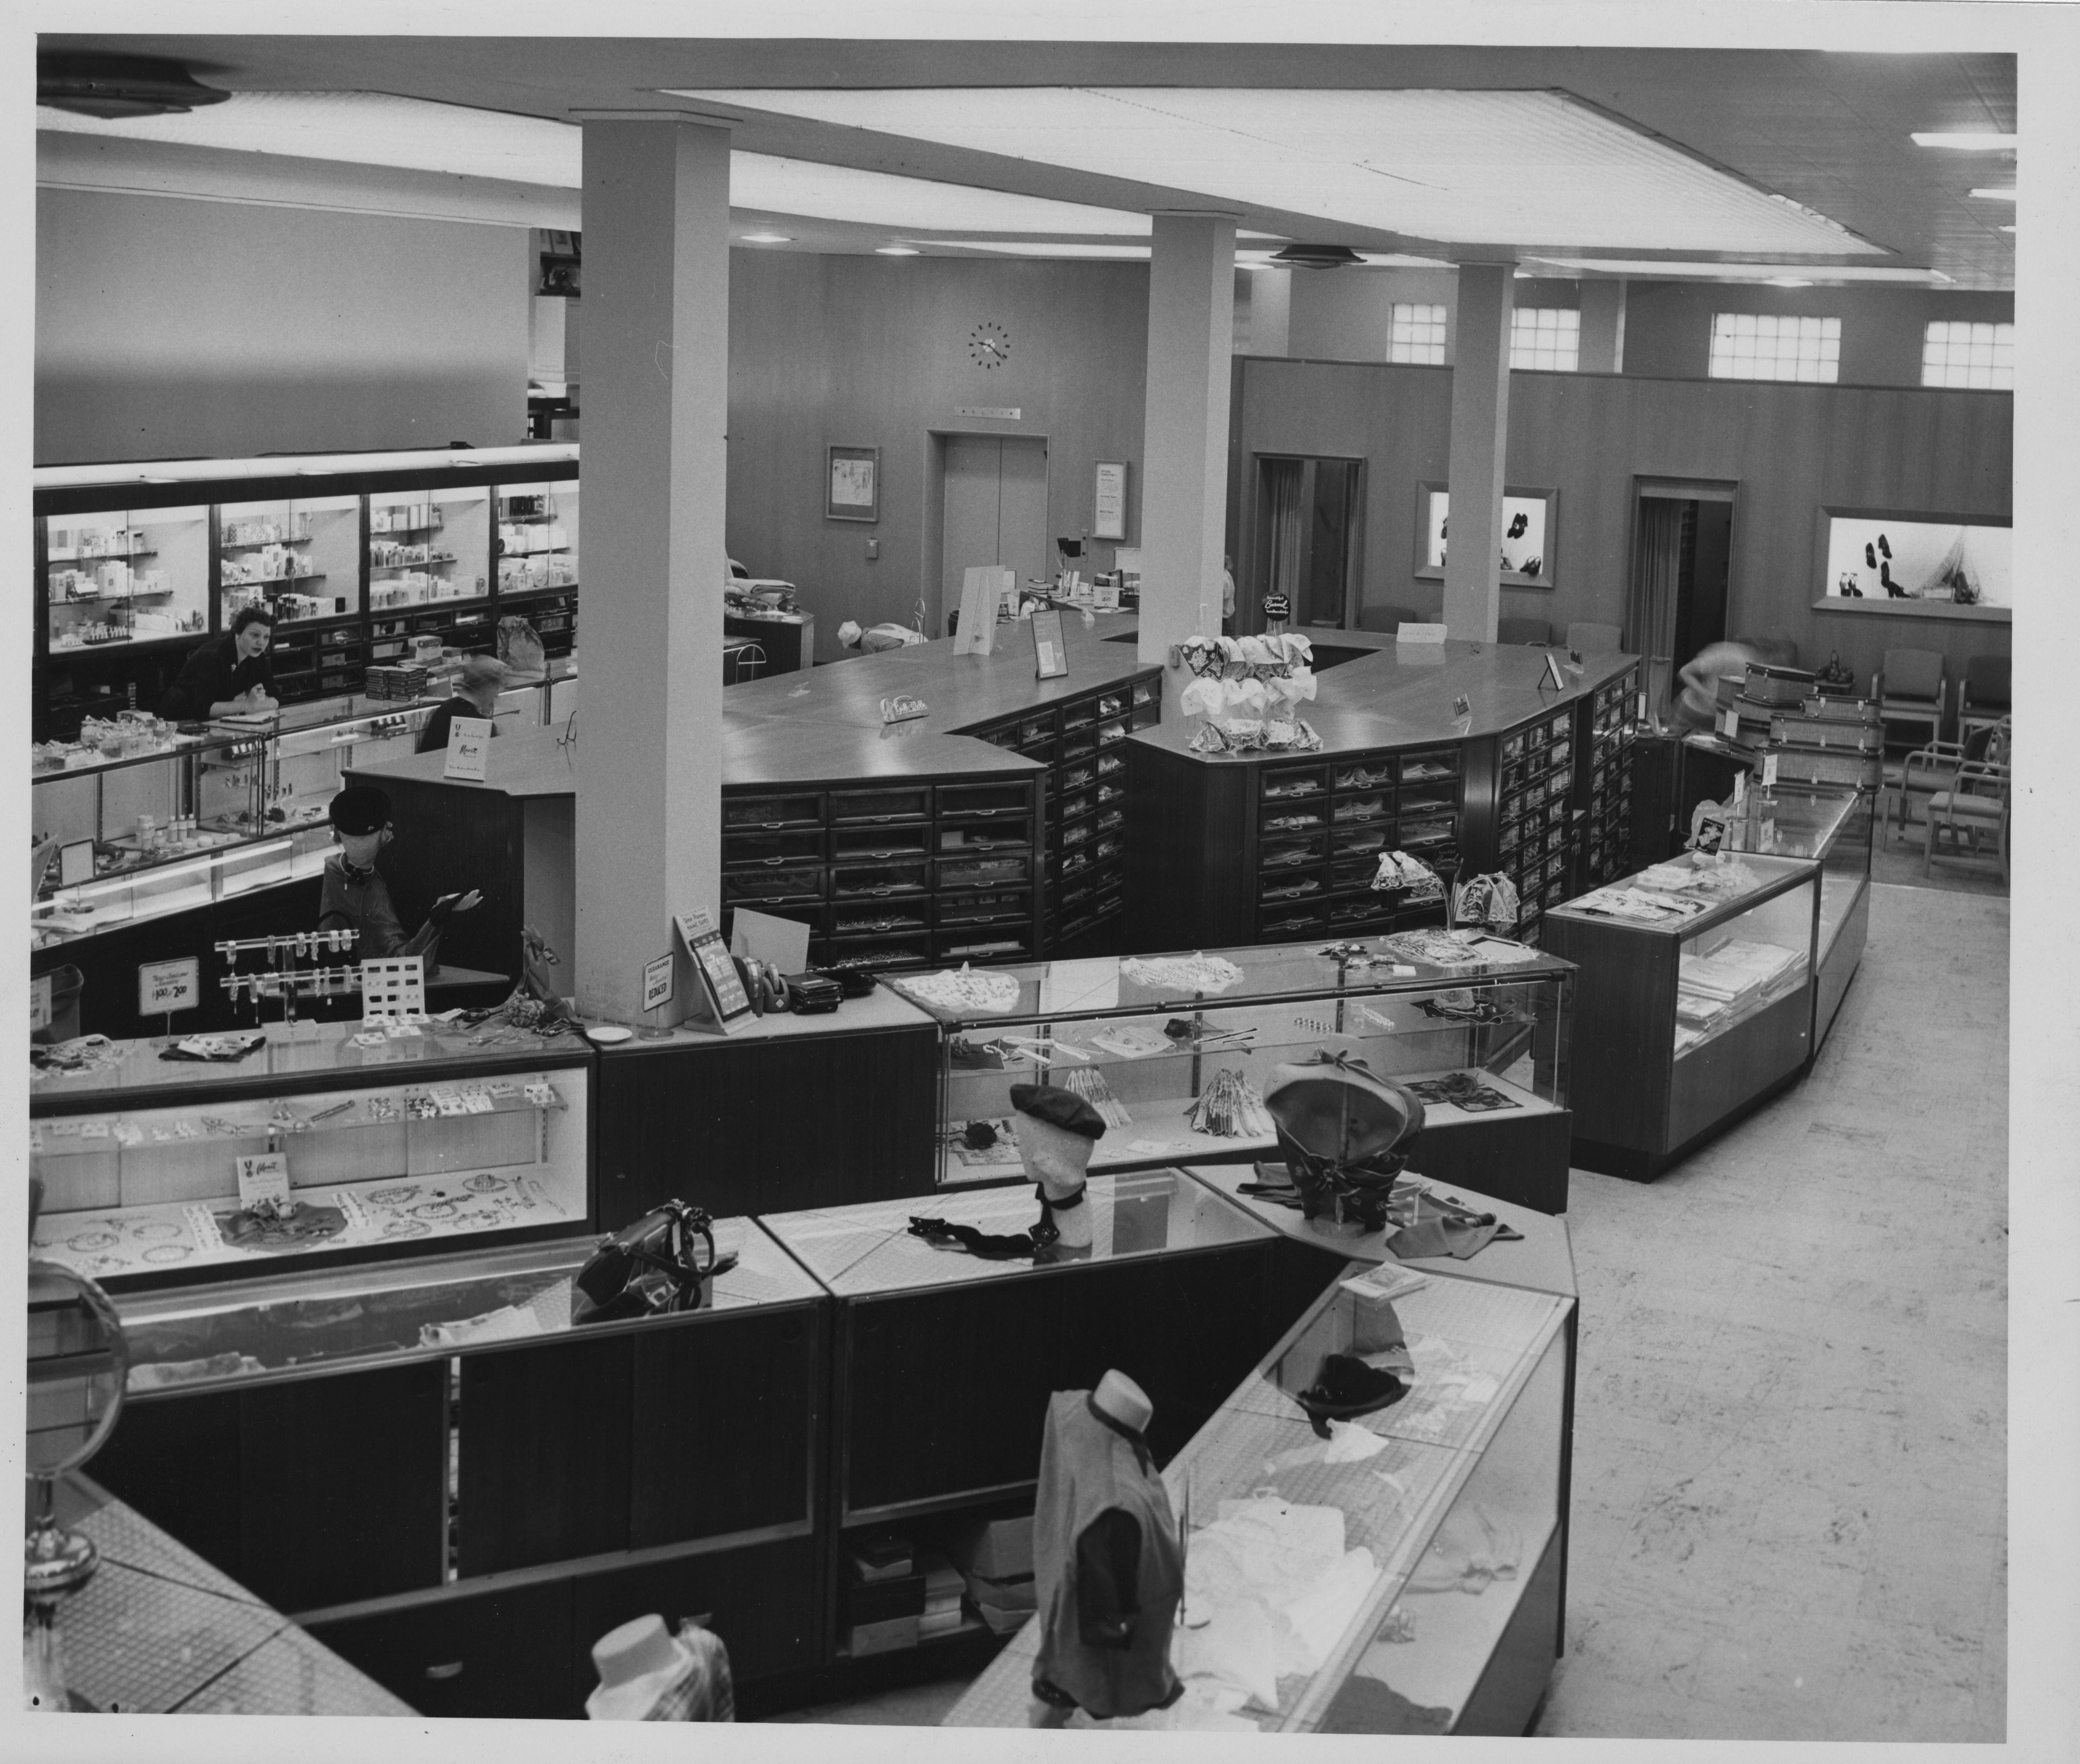 Interior of Goodyear's, 1939 image